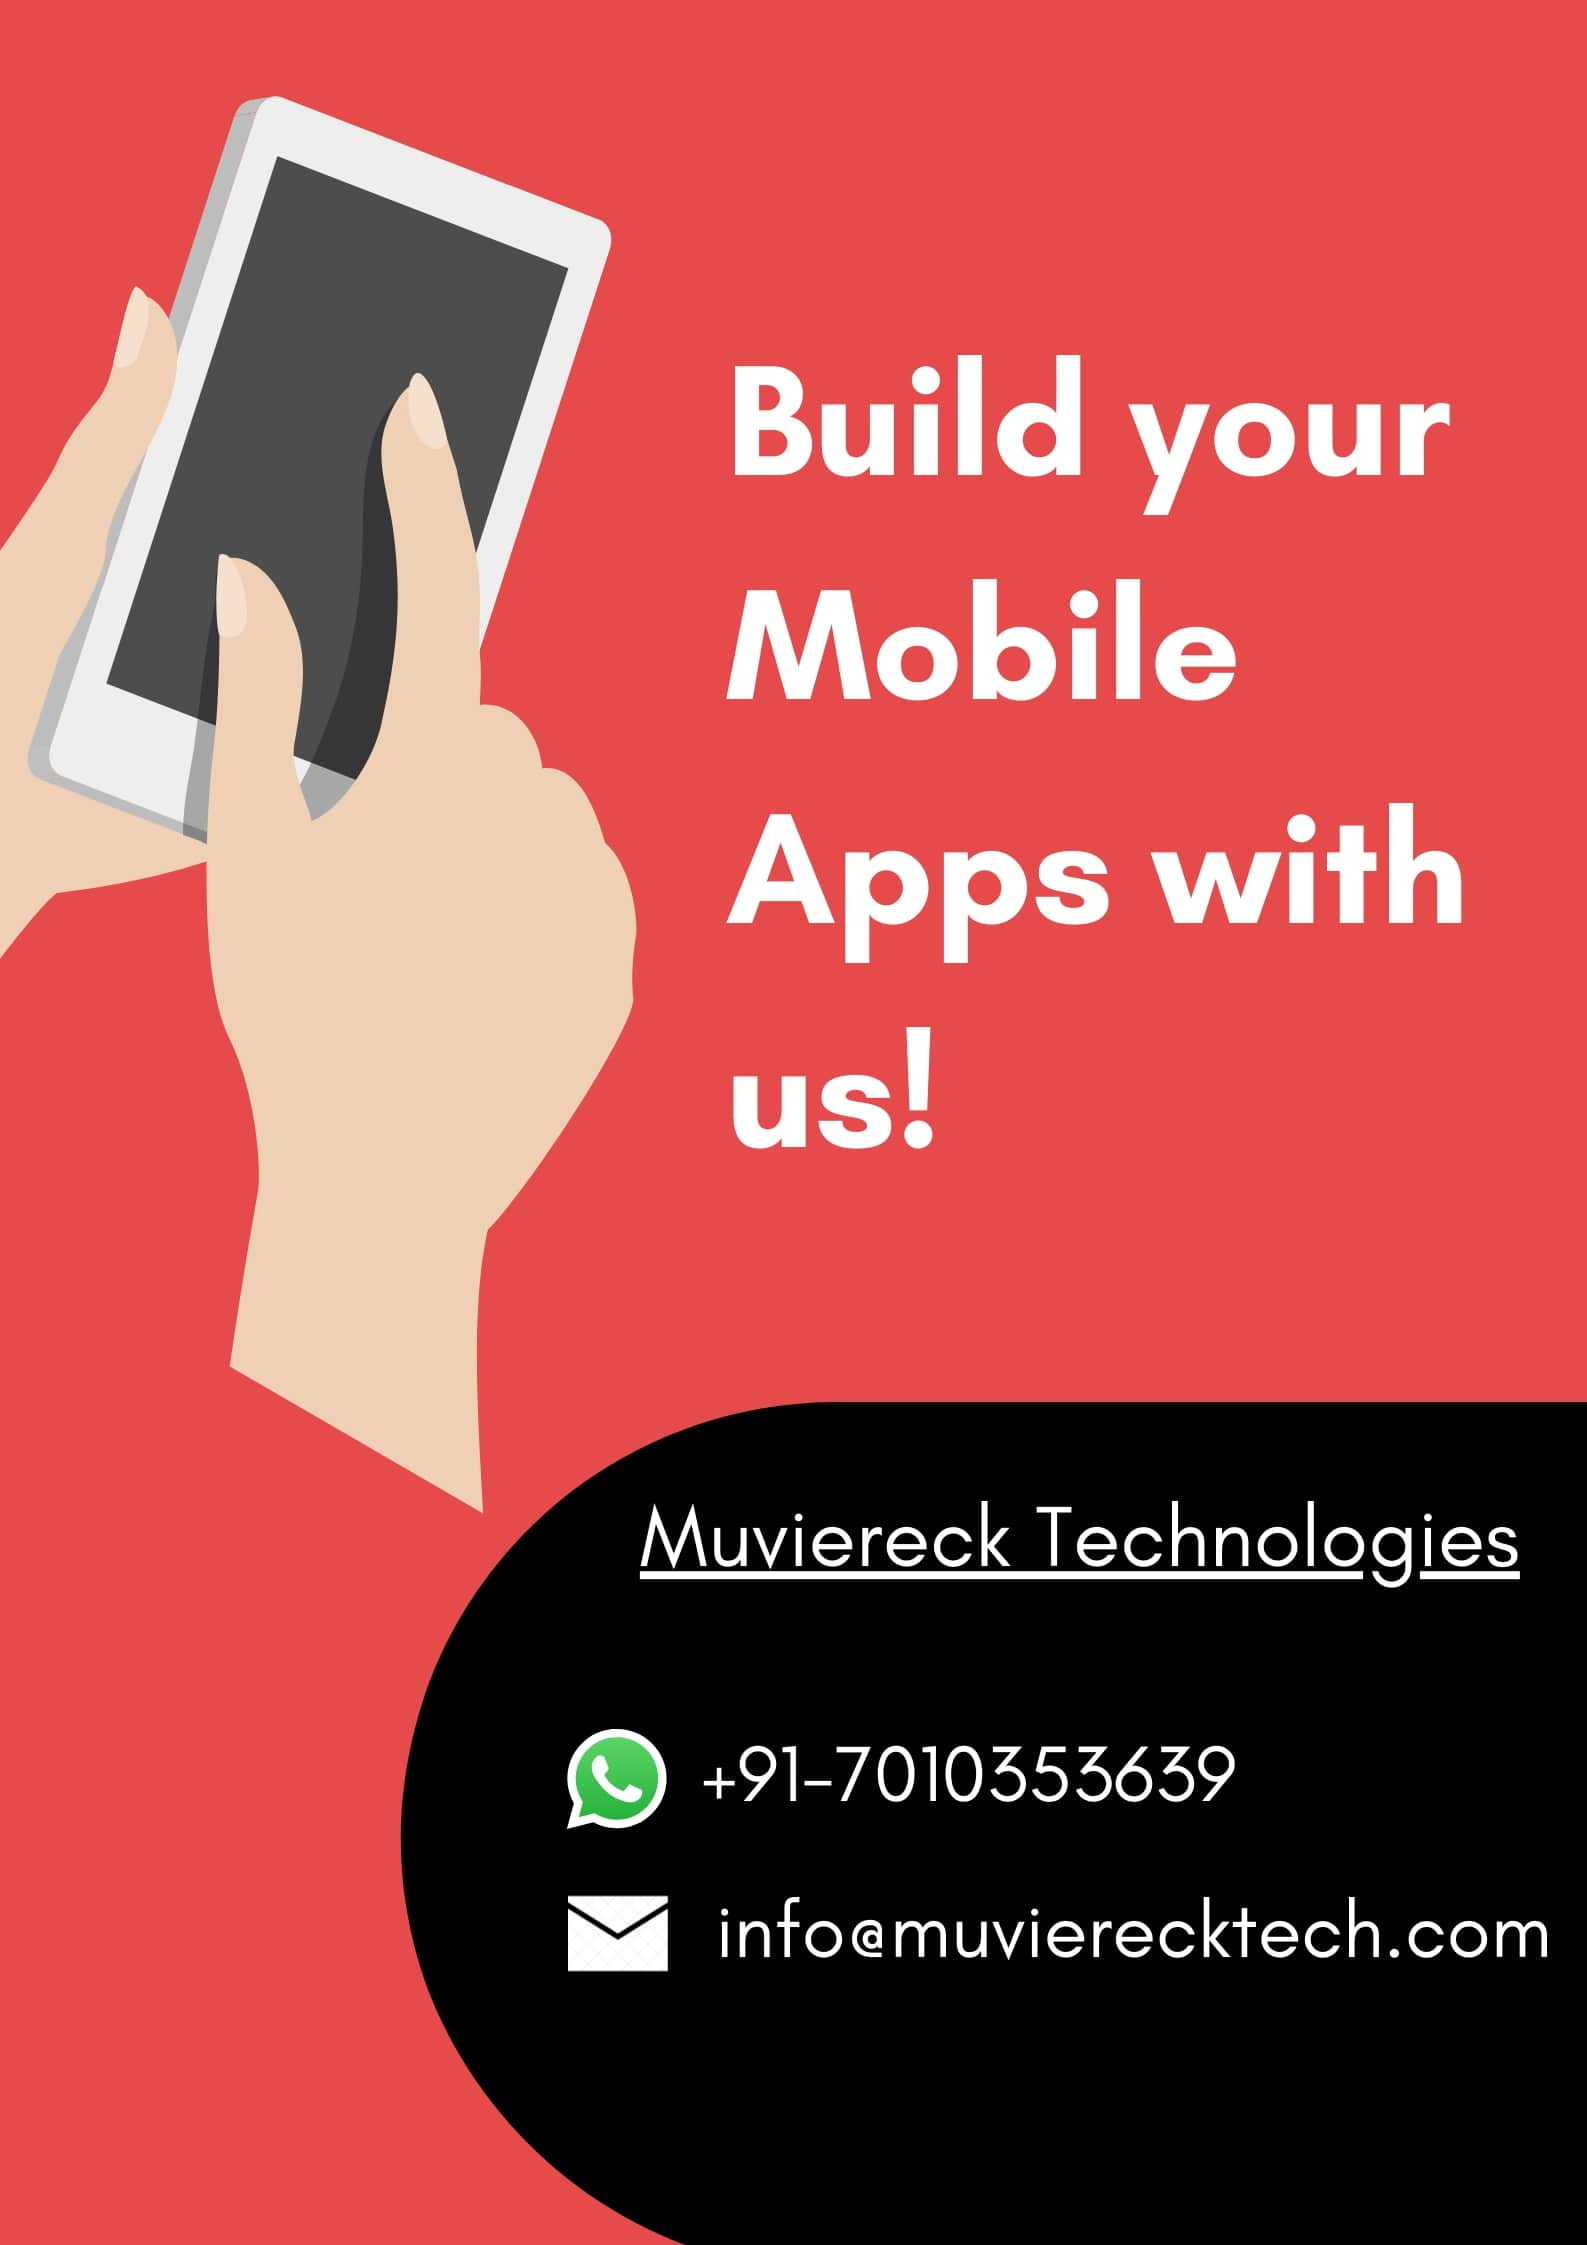 mobile app development company in Chennai | free Classified | Free Advertising | free classified ads